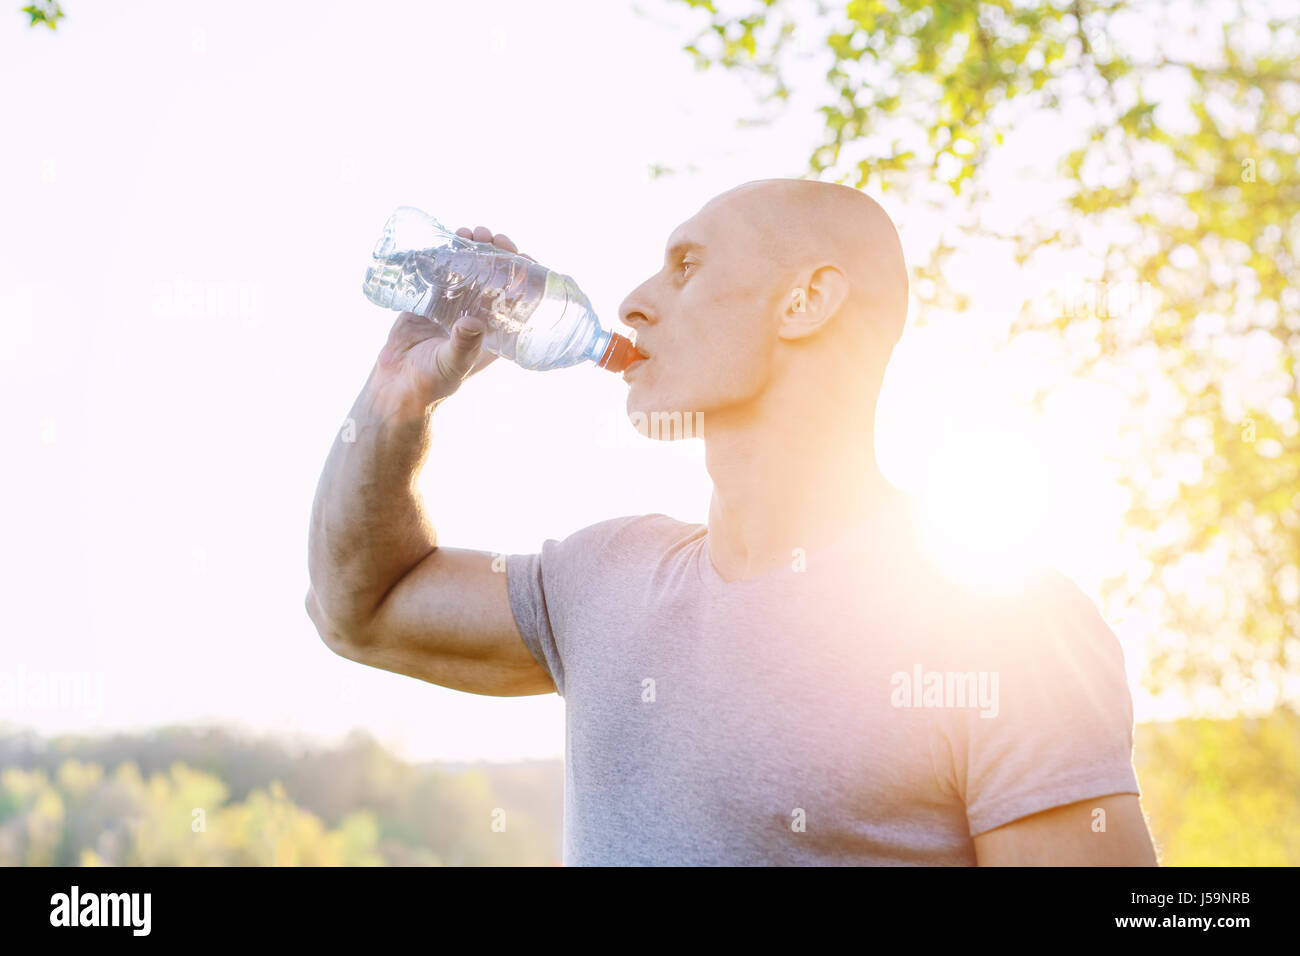 young athlete is refreshing himself with water, sport and healthy lifestyle - Stock Image